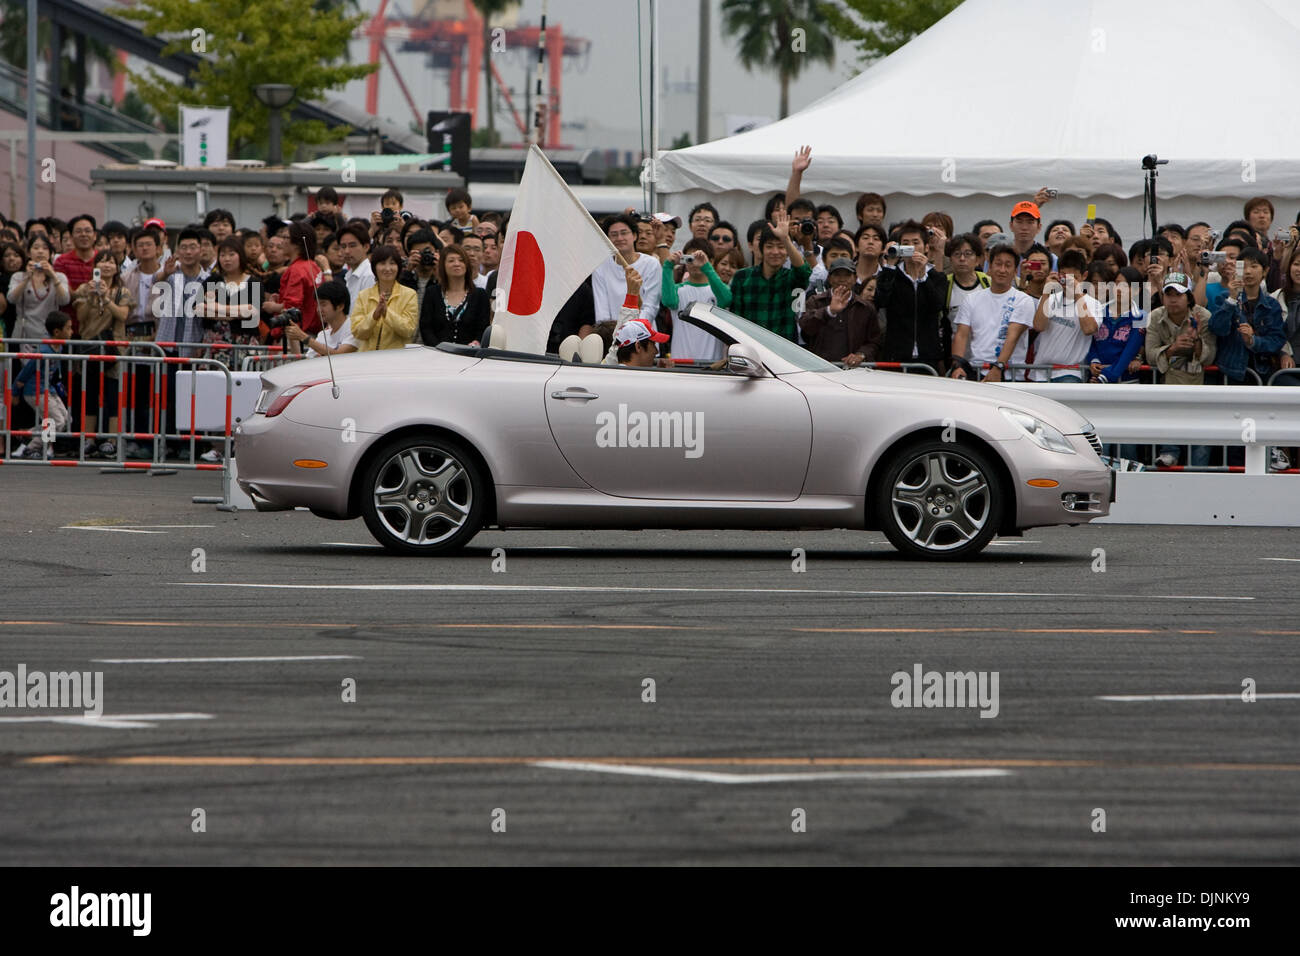 Oct 05, 2008 - Tokyo, Japan - Motor Sport Japan Festival takes place in Odaiba. This annual event consist of Japanese Stock Photo